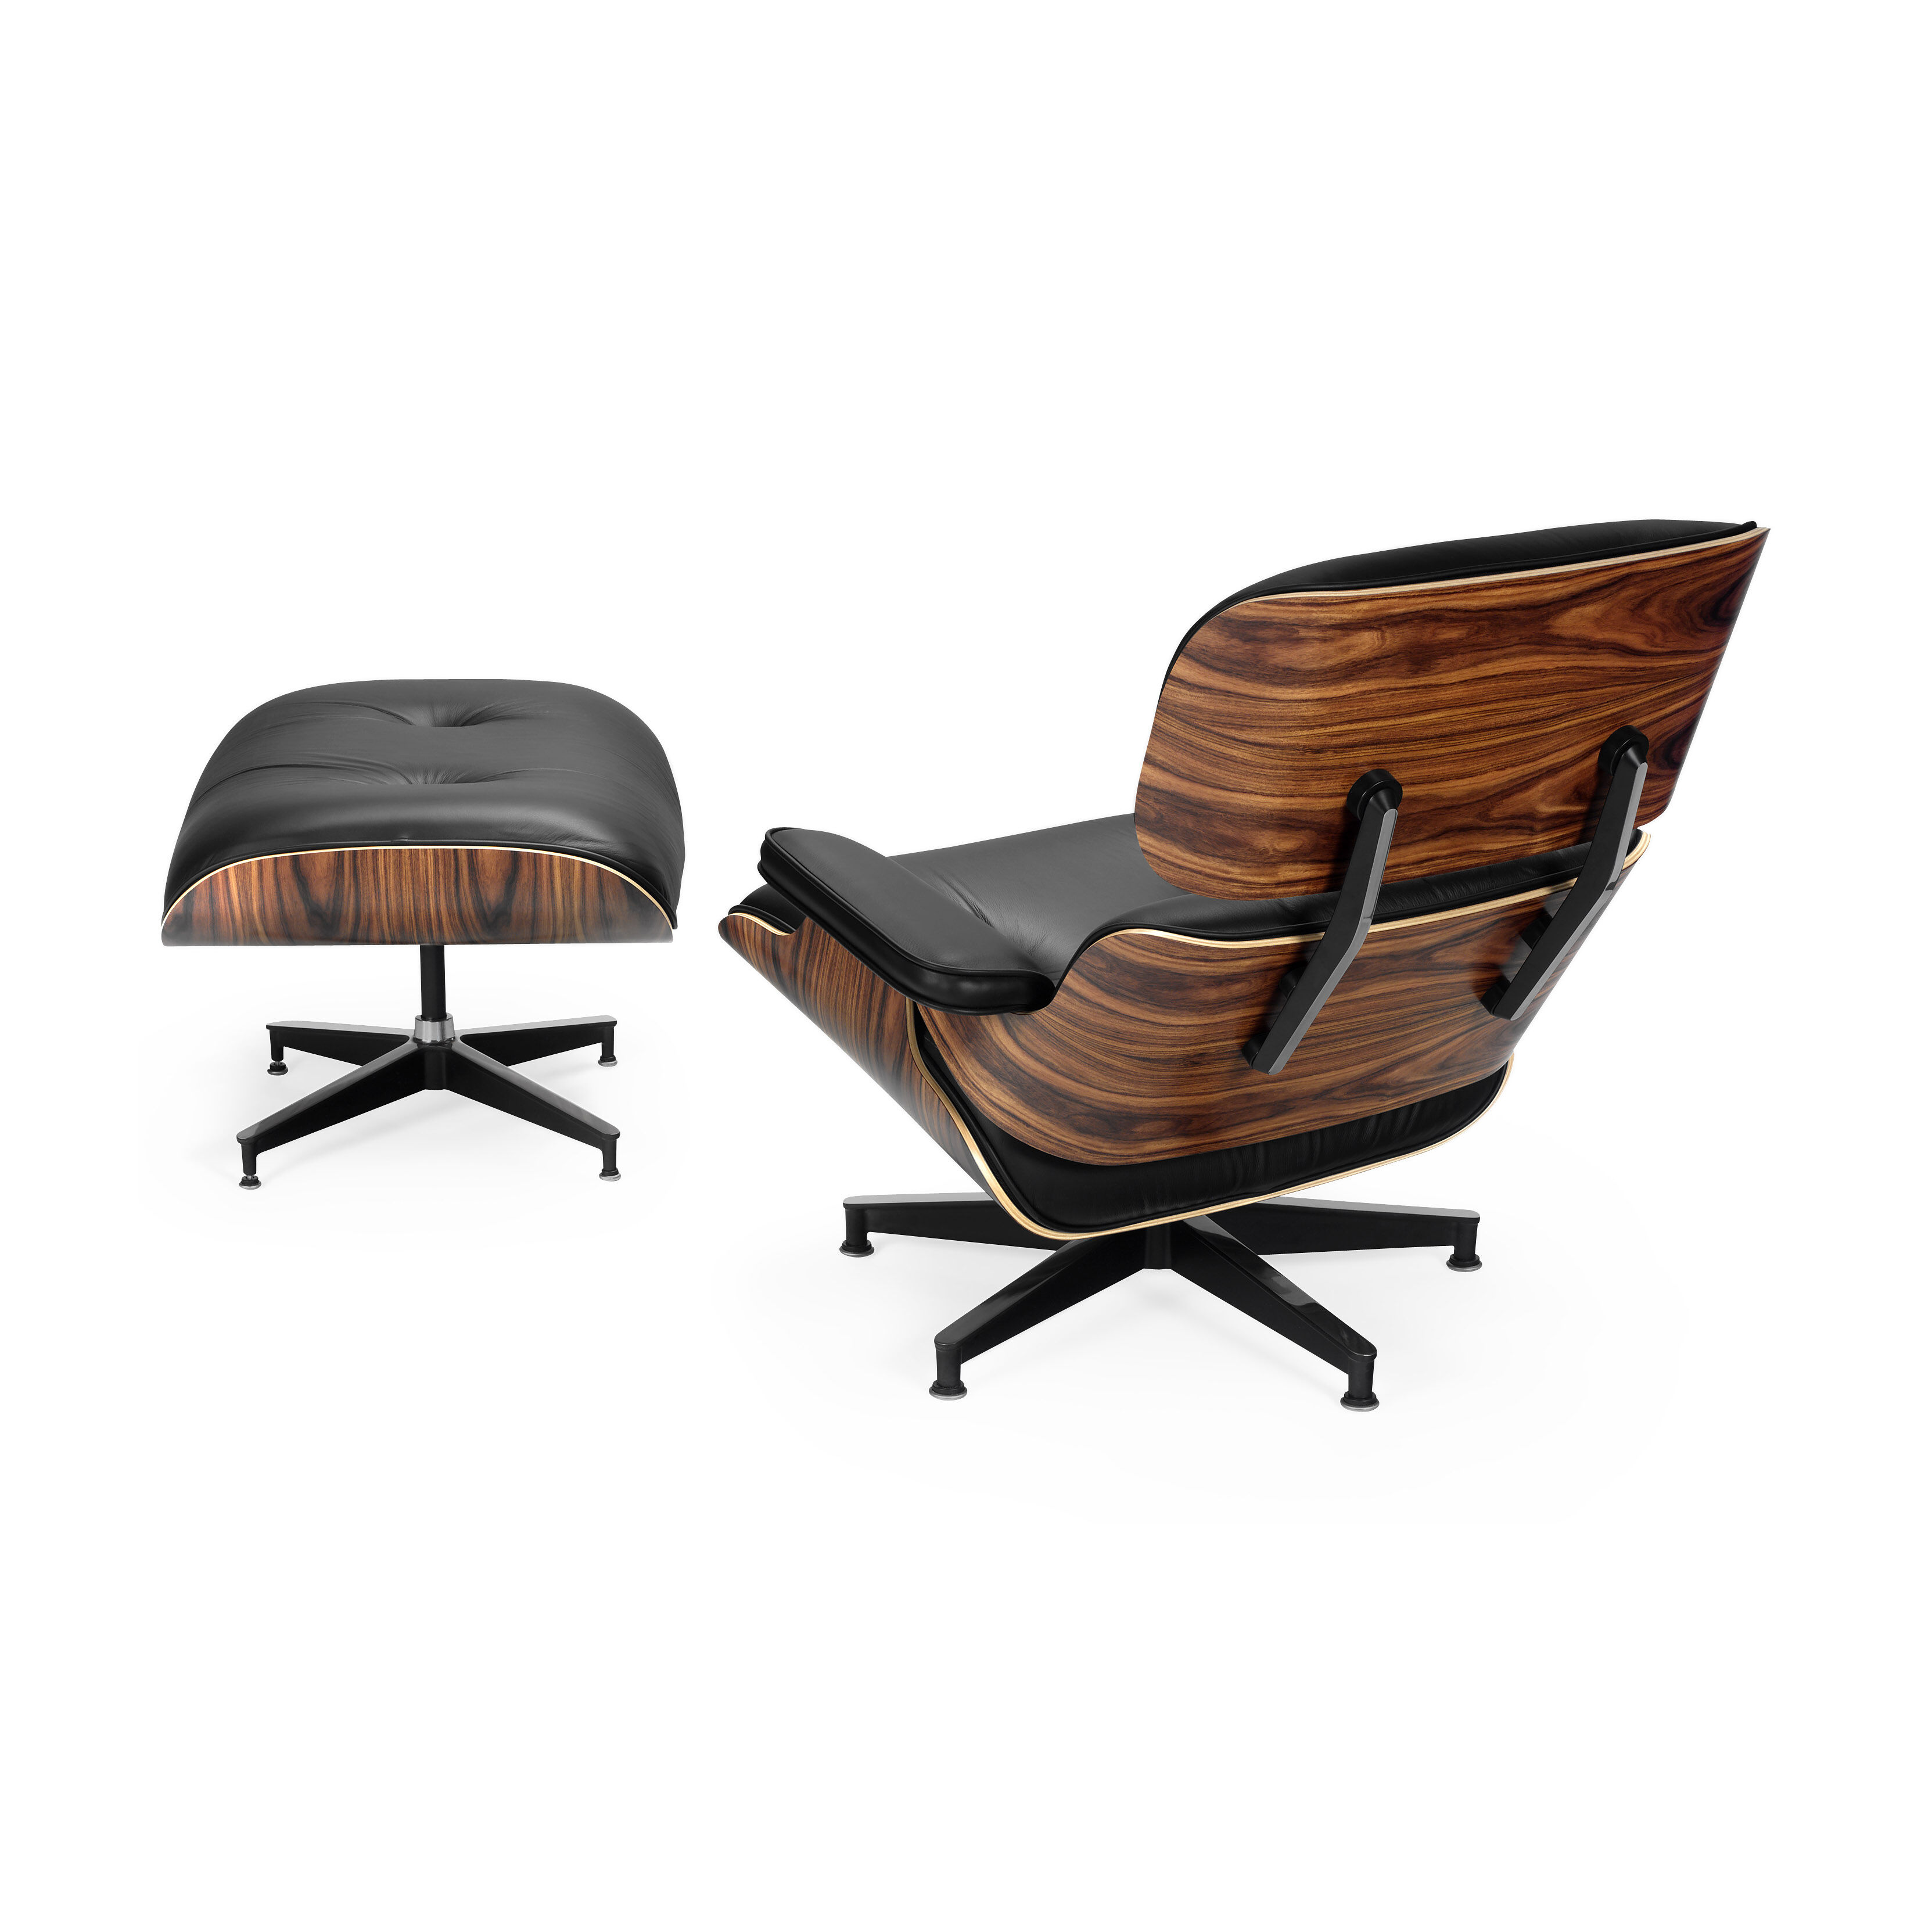 Superbe Eames Lounge Chair With Ottoman In Color Black/ Walnut